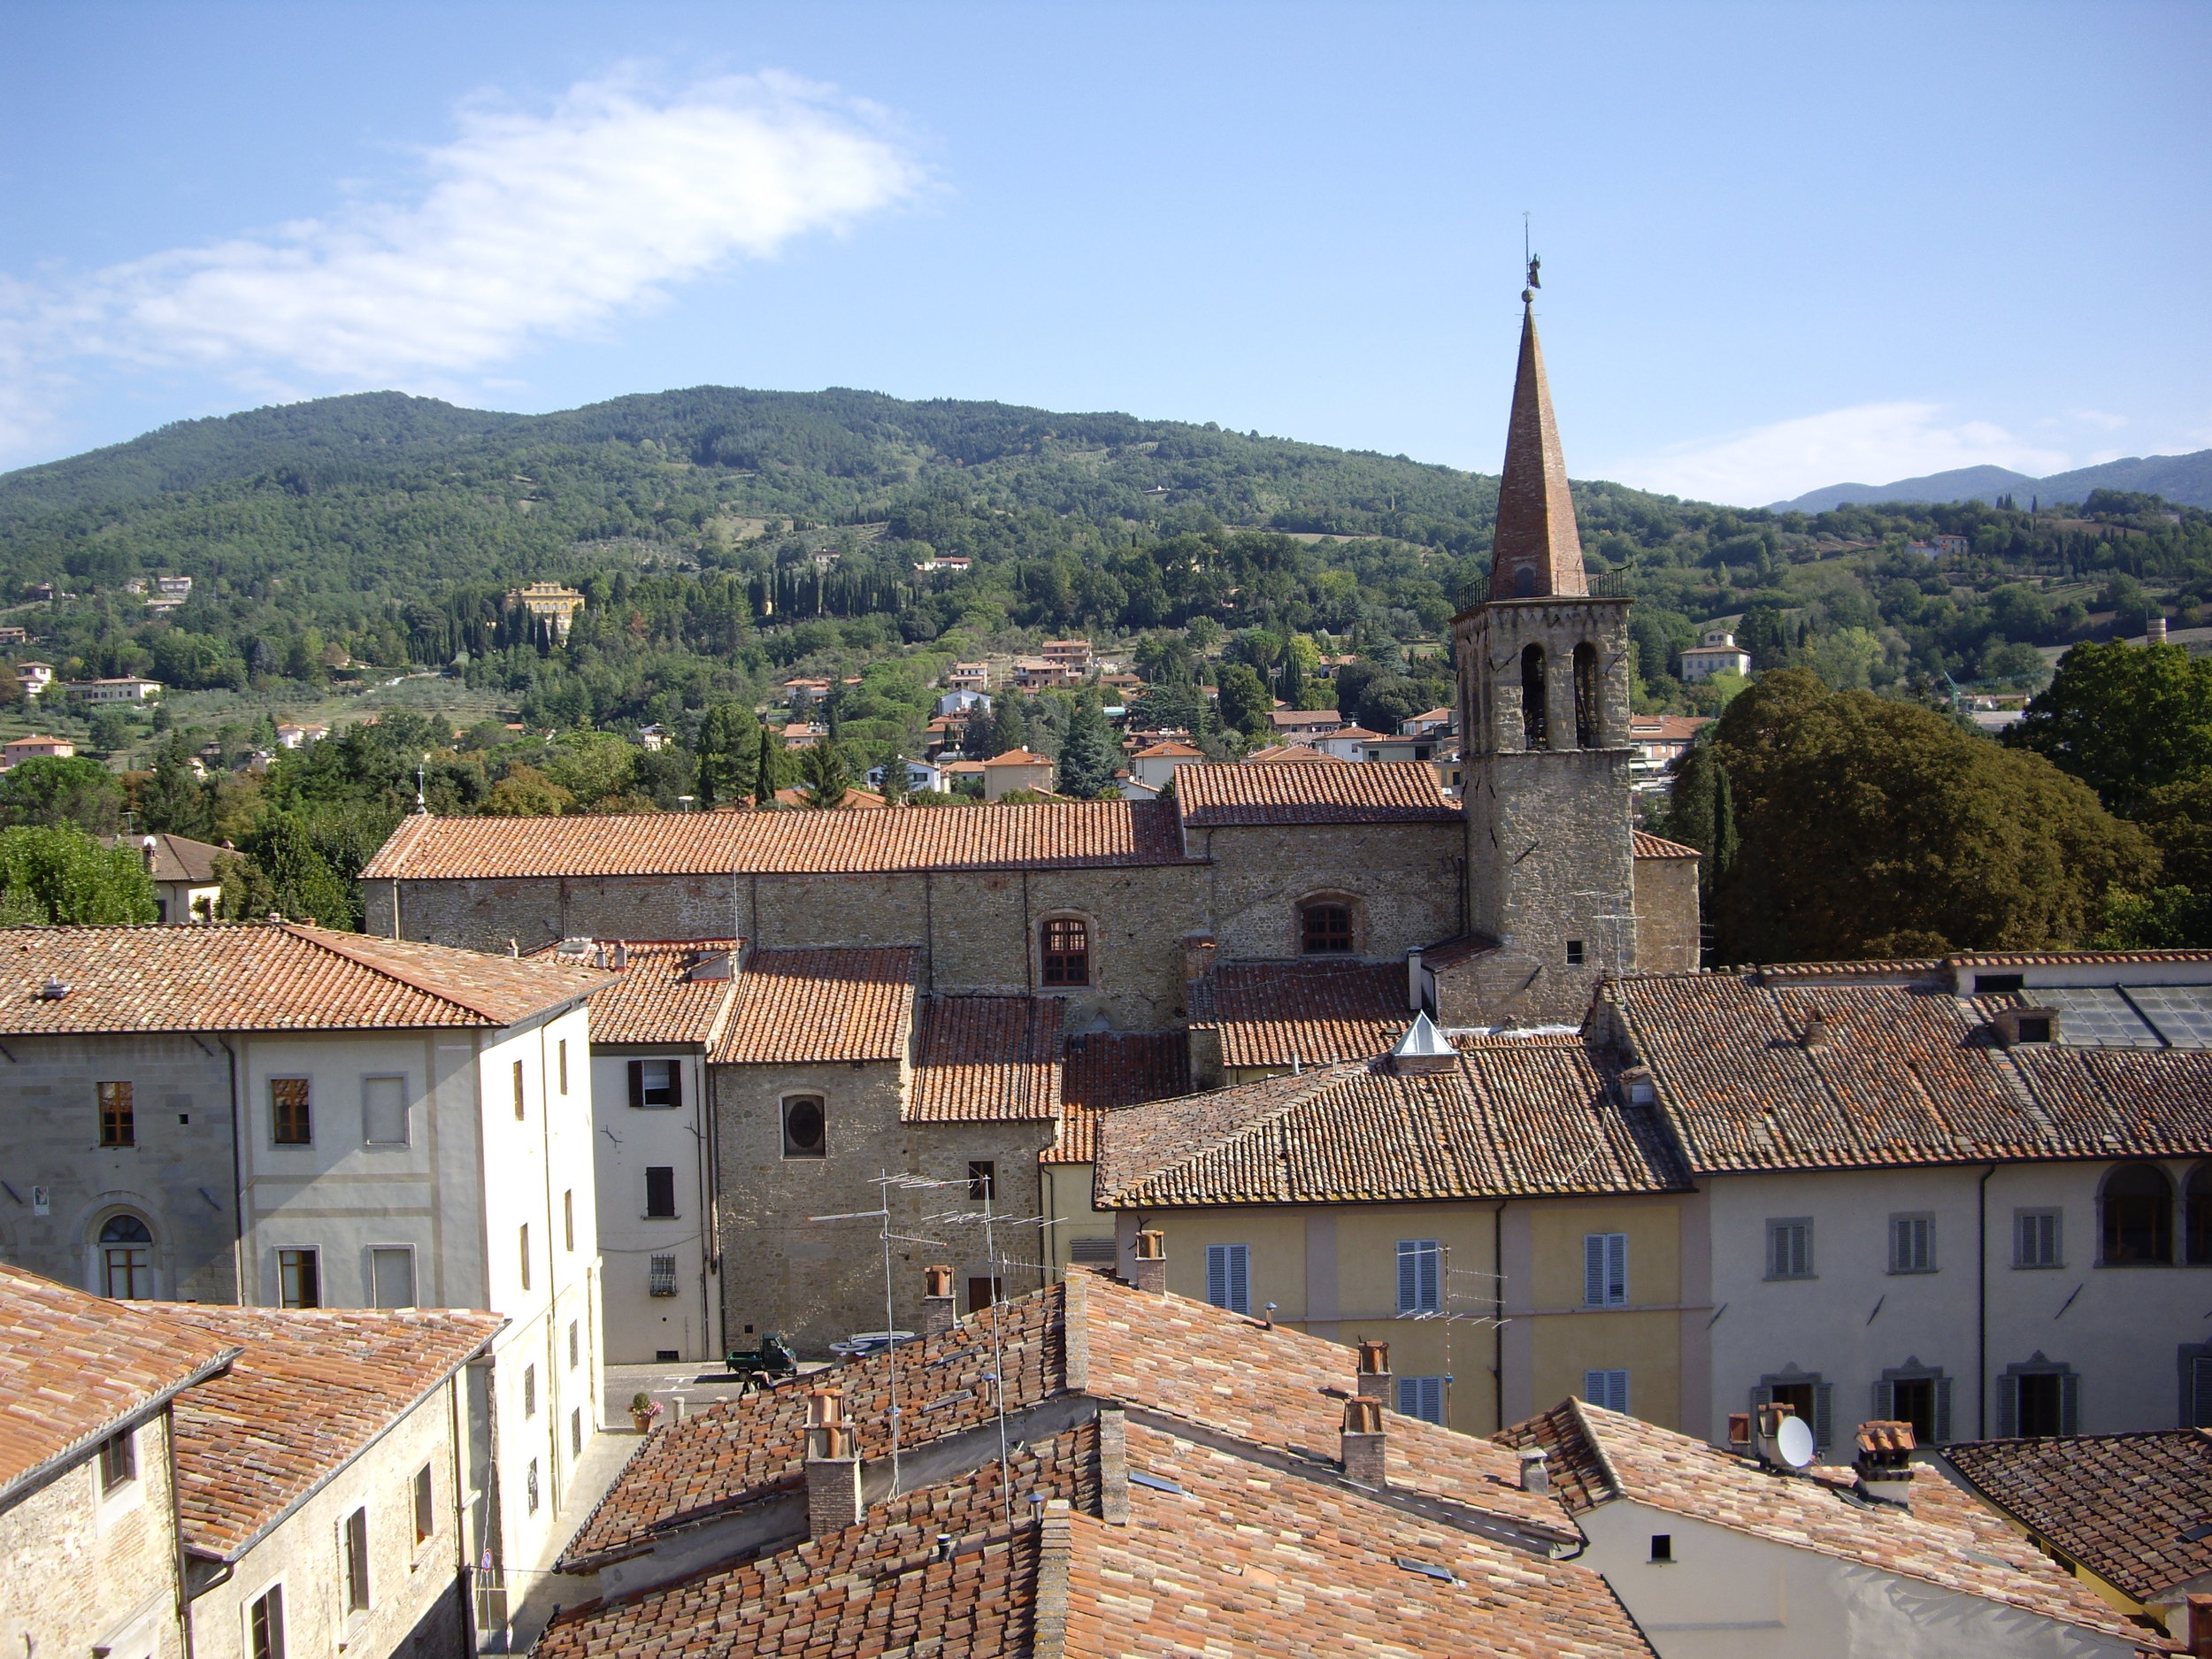 Sansepolcro_roofs_with_church_steeple.jpg